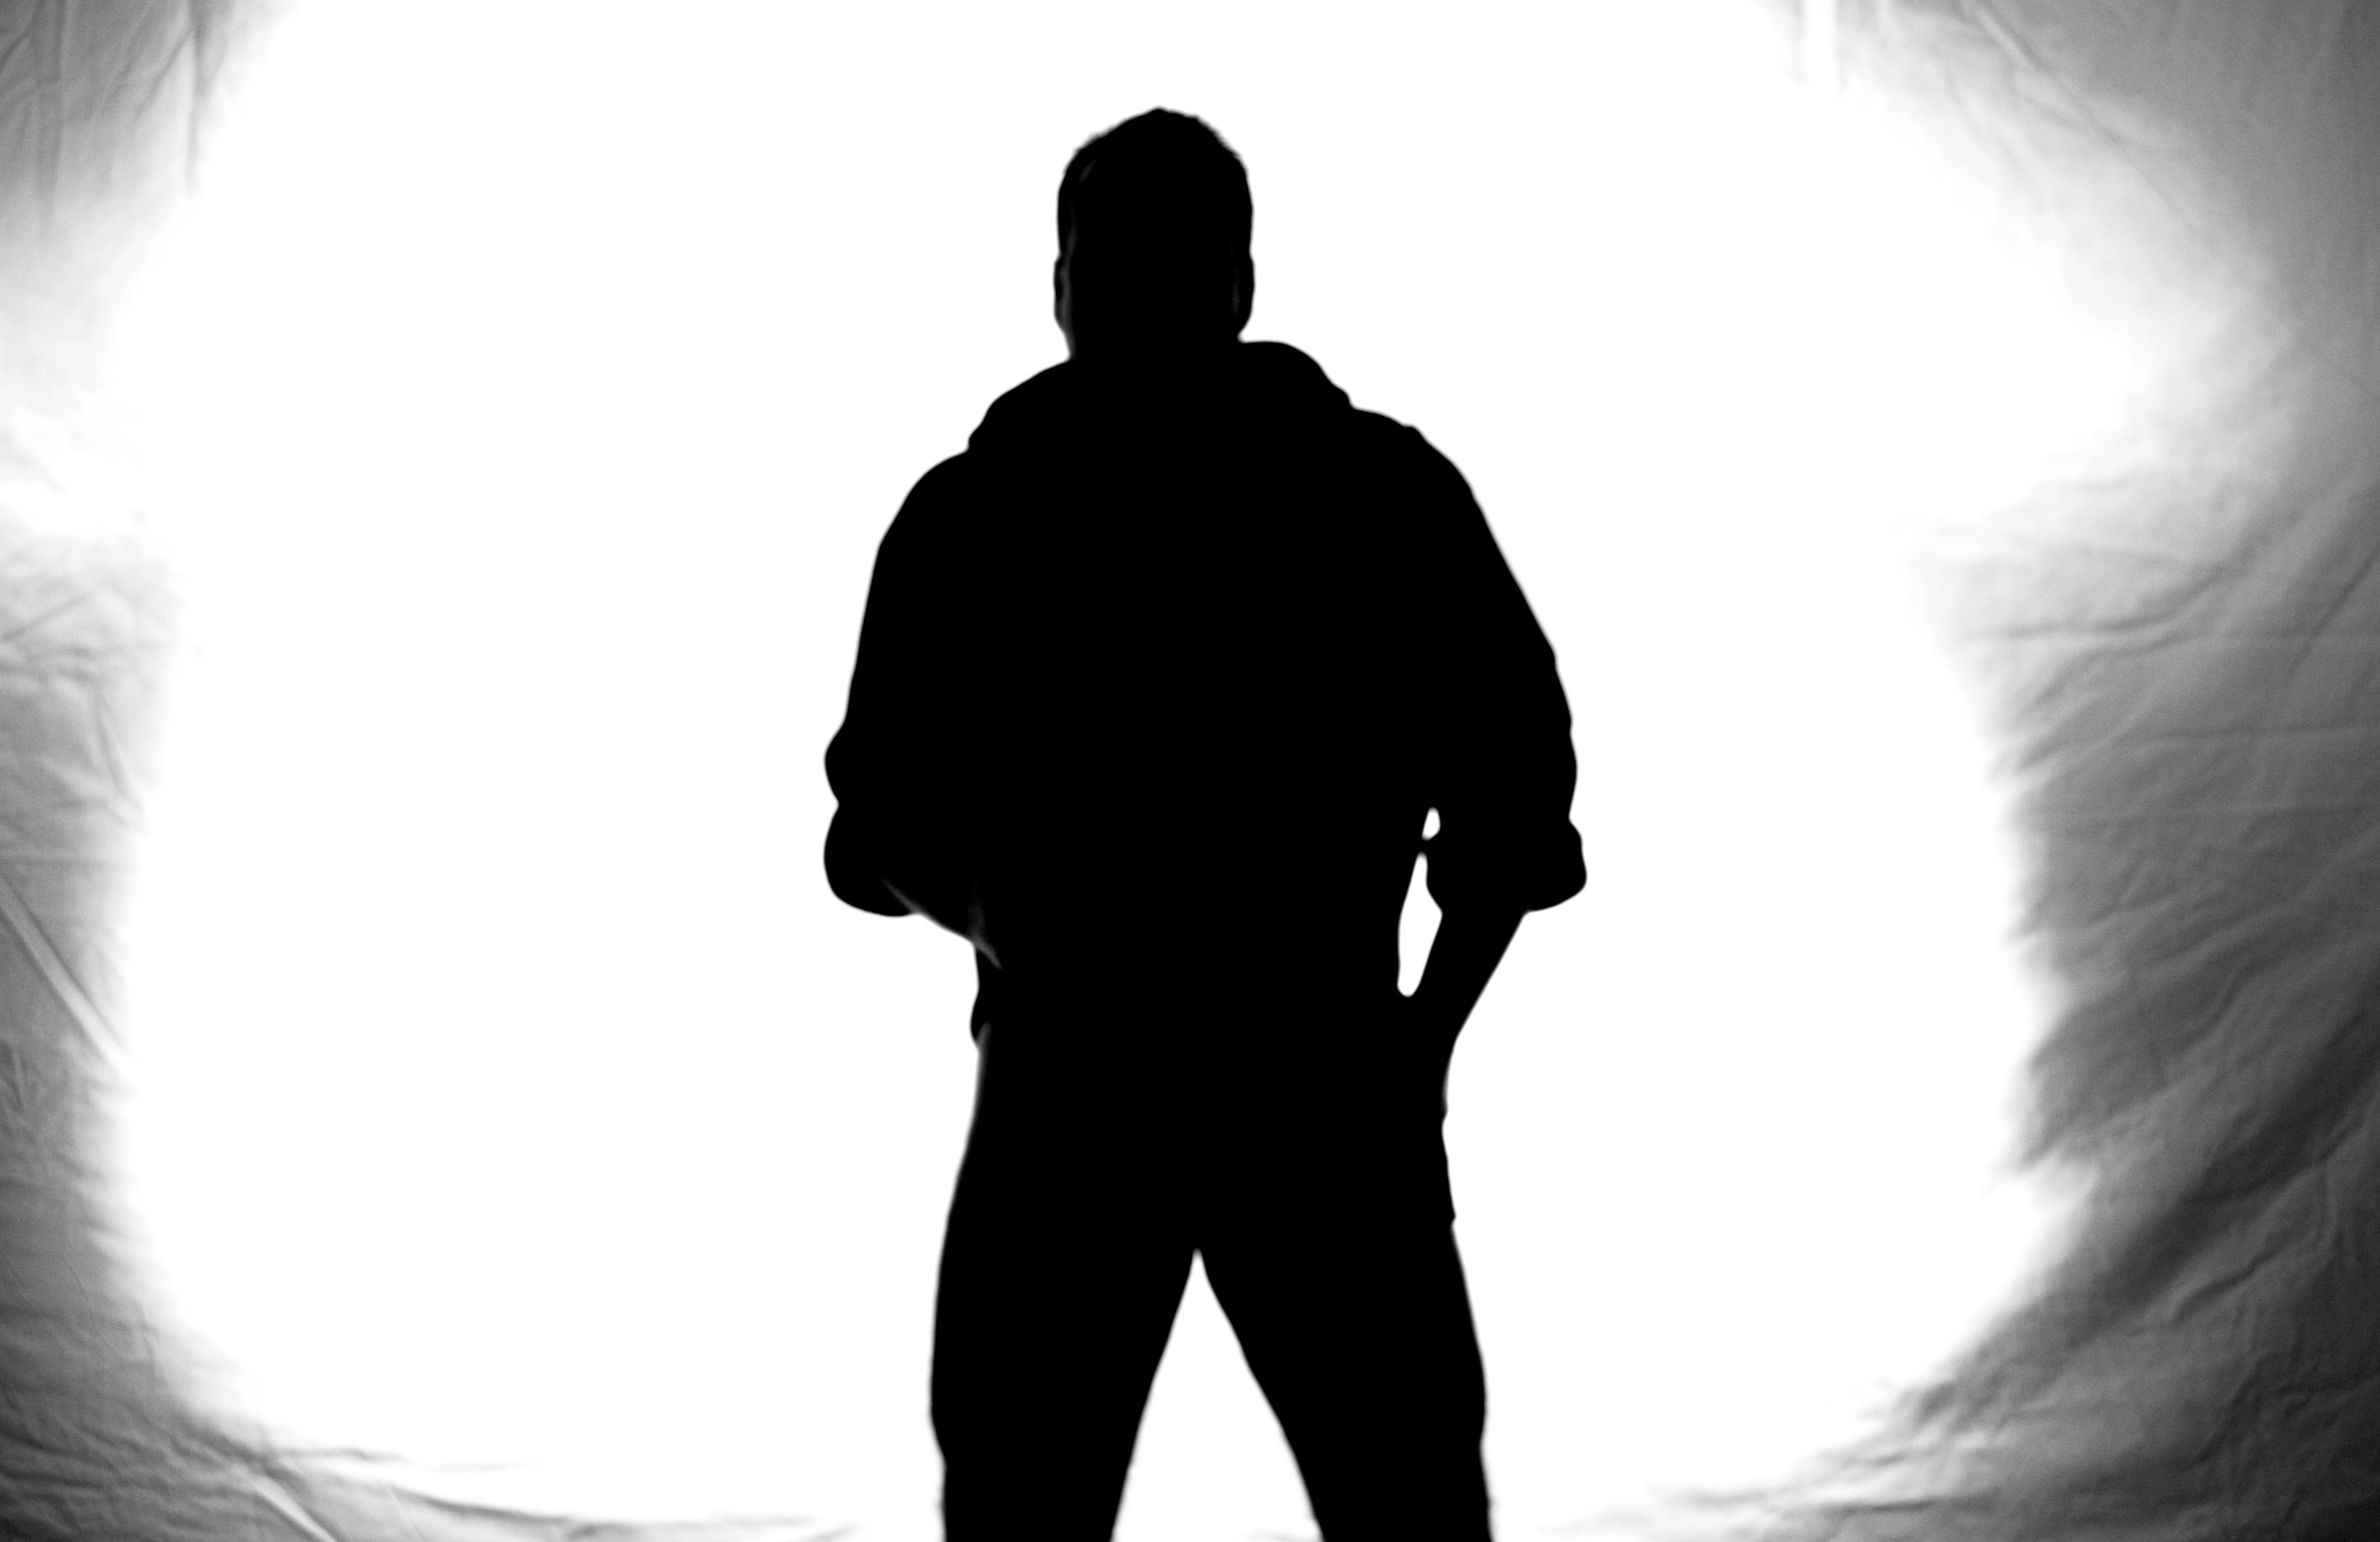 4792x3104 Free Images Hand, Man, Silhouette, Black And White, Dark, Male